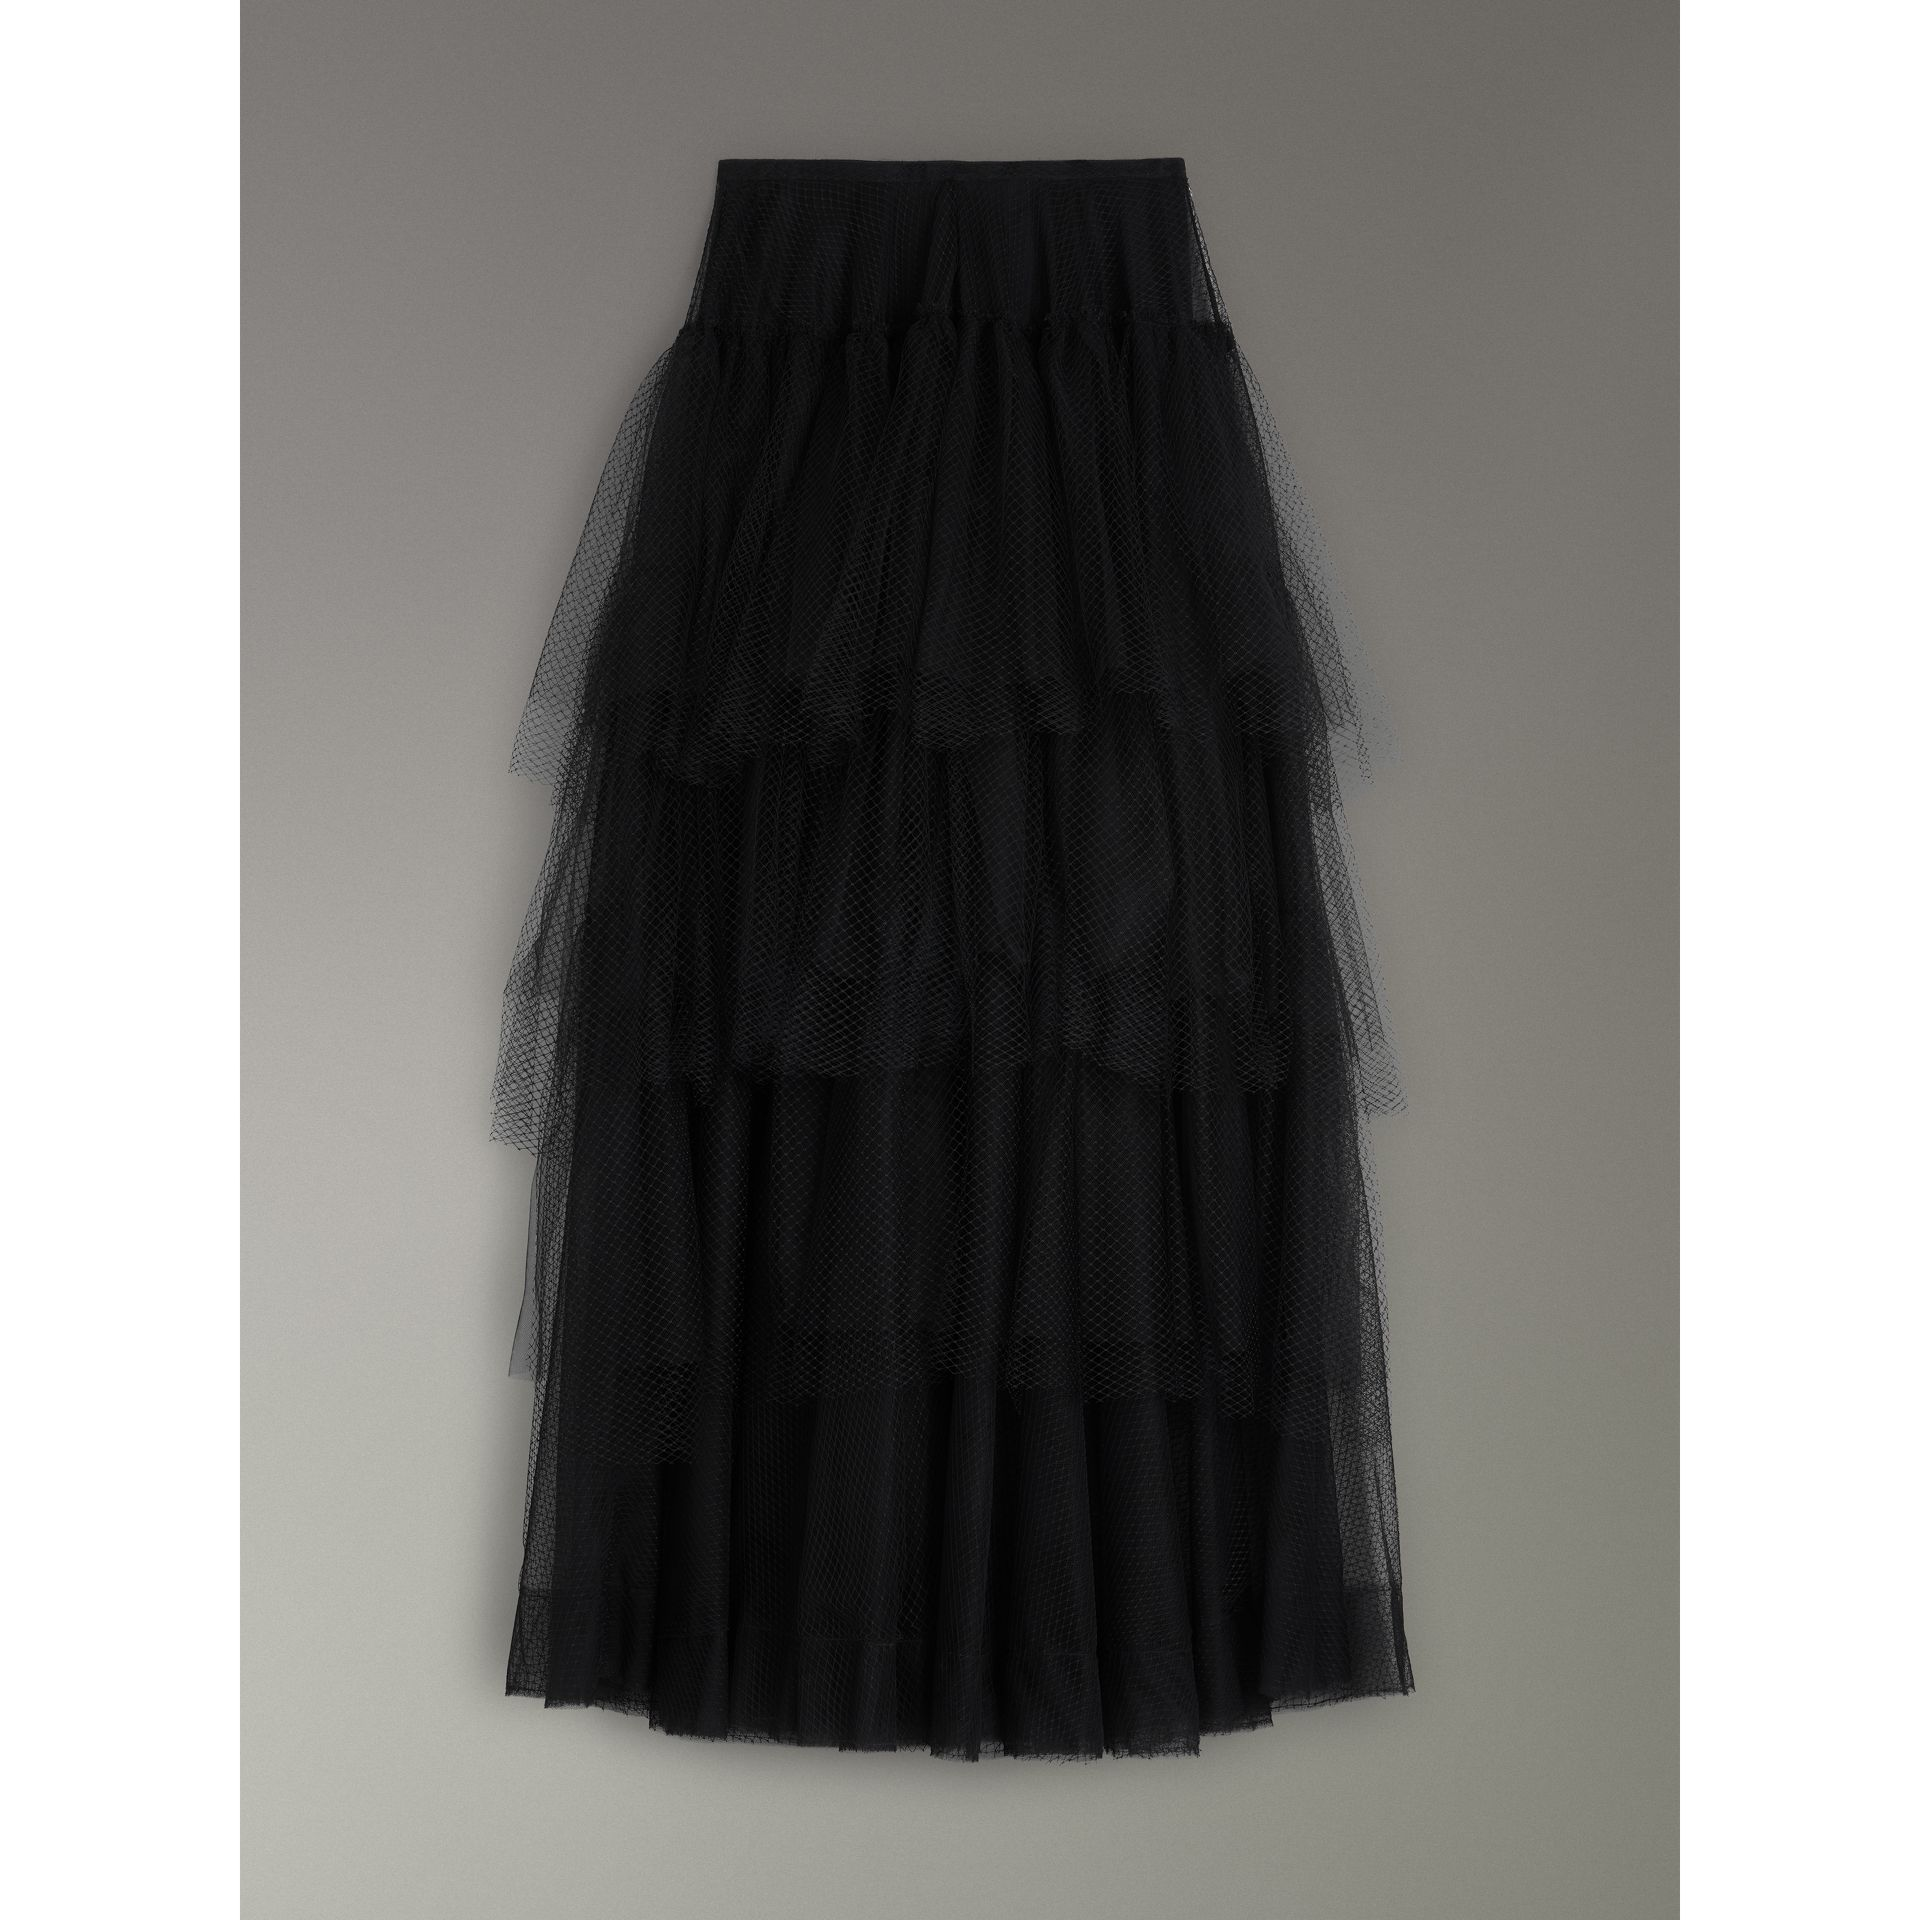 Tiered Open-net Tulle Skirt in Black - Women | Burberry United States - gallery image 3